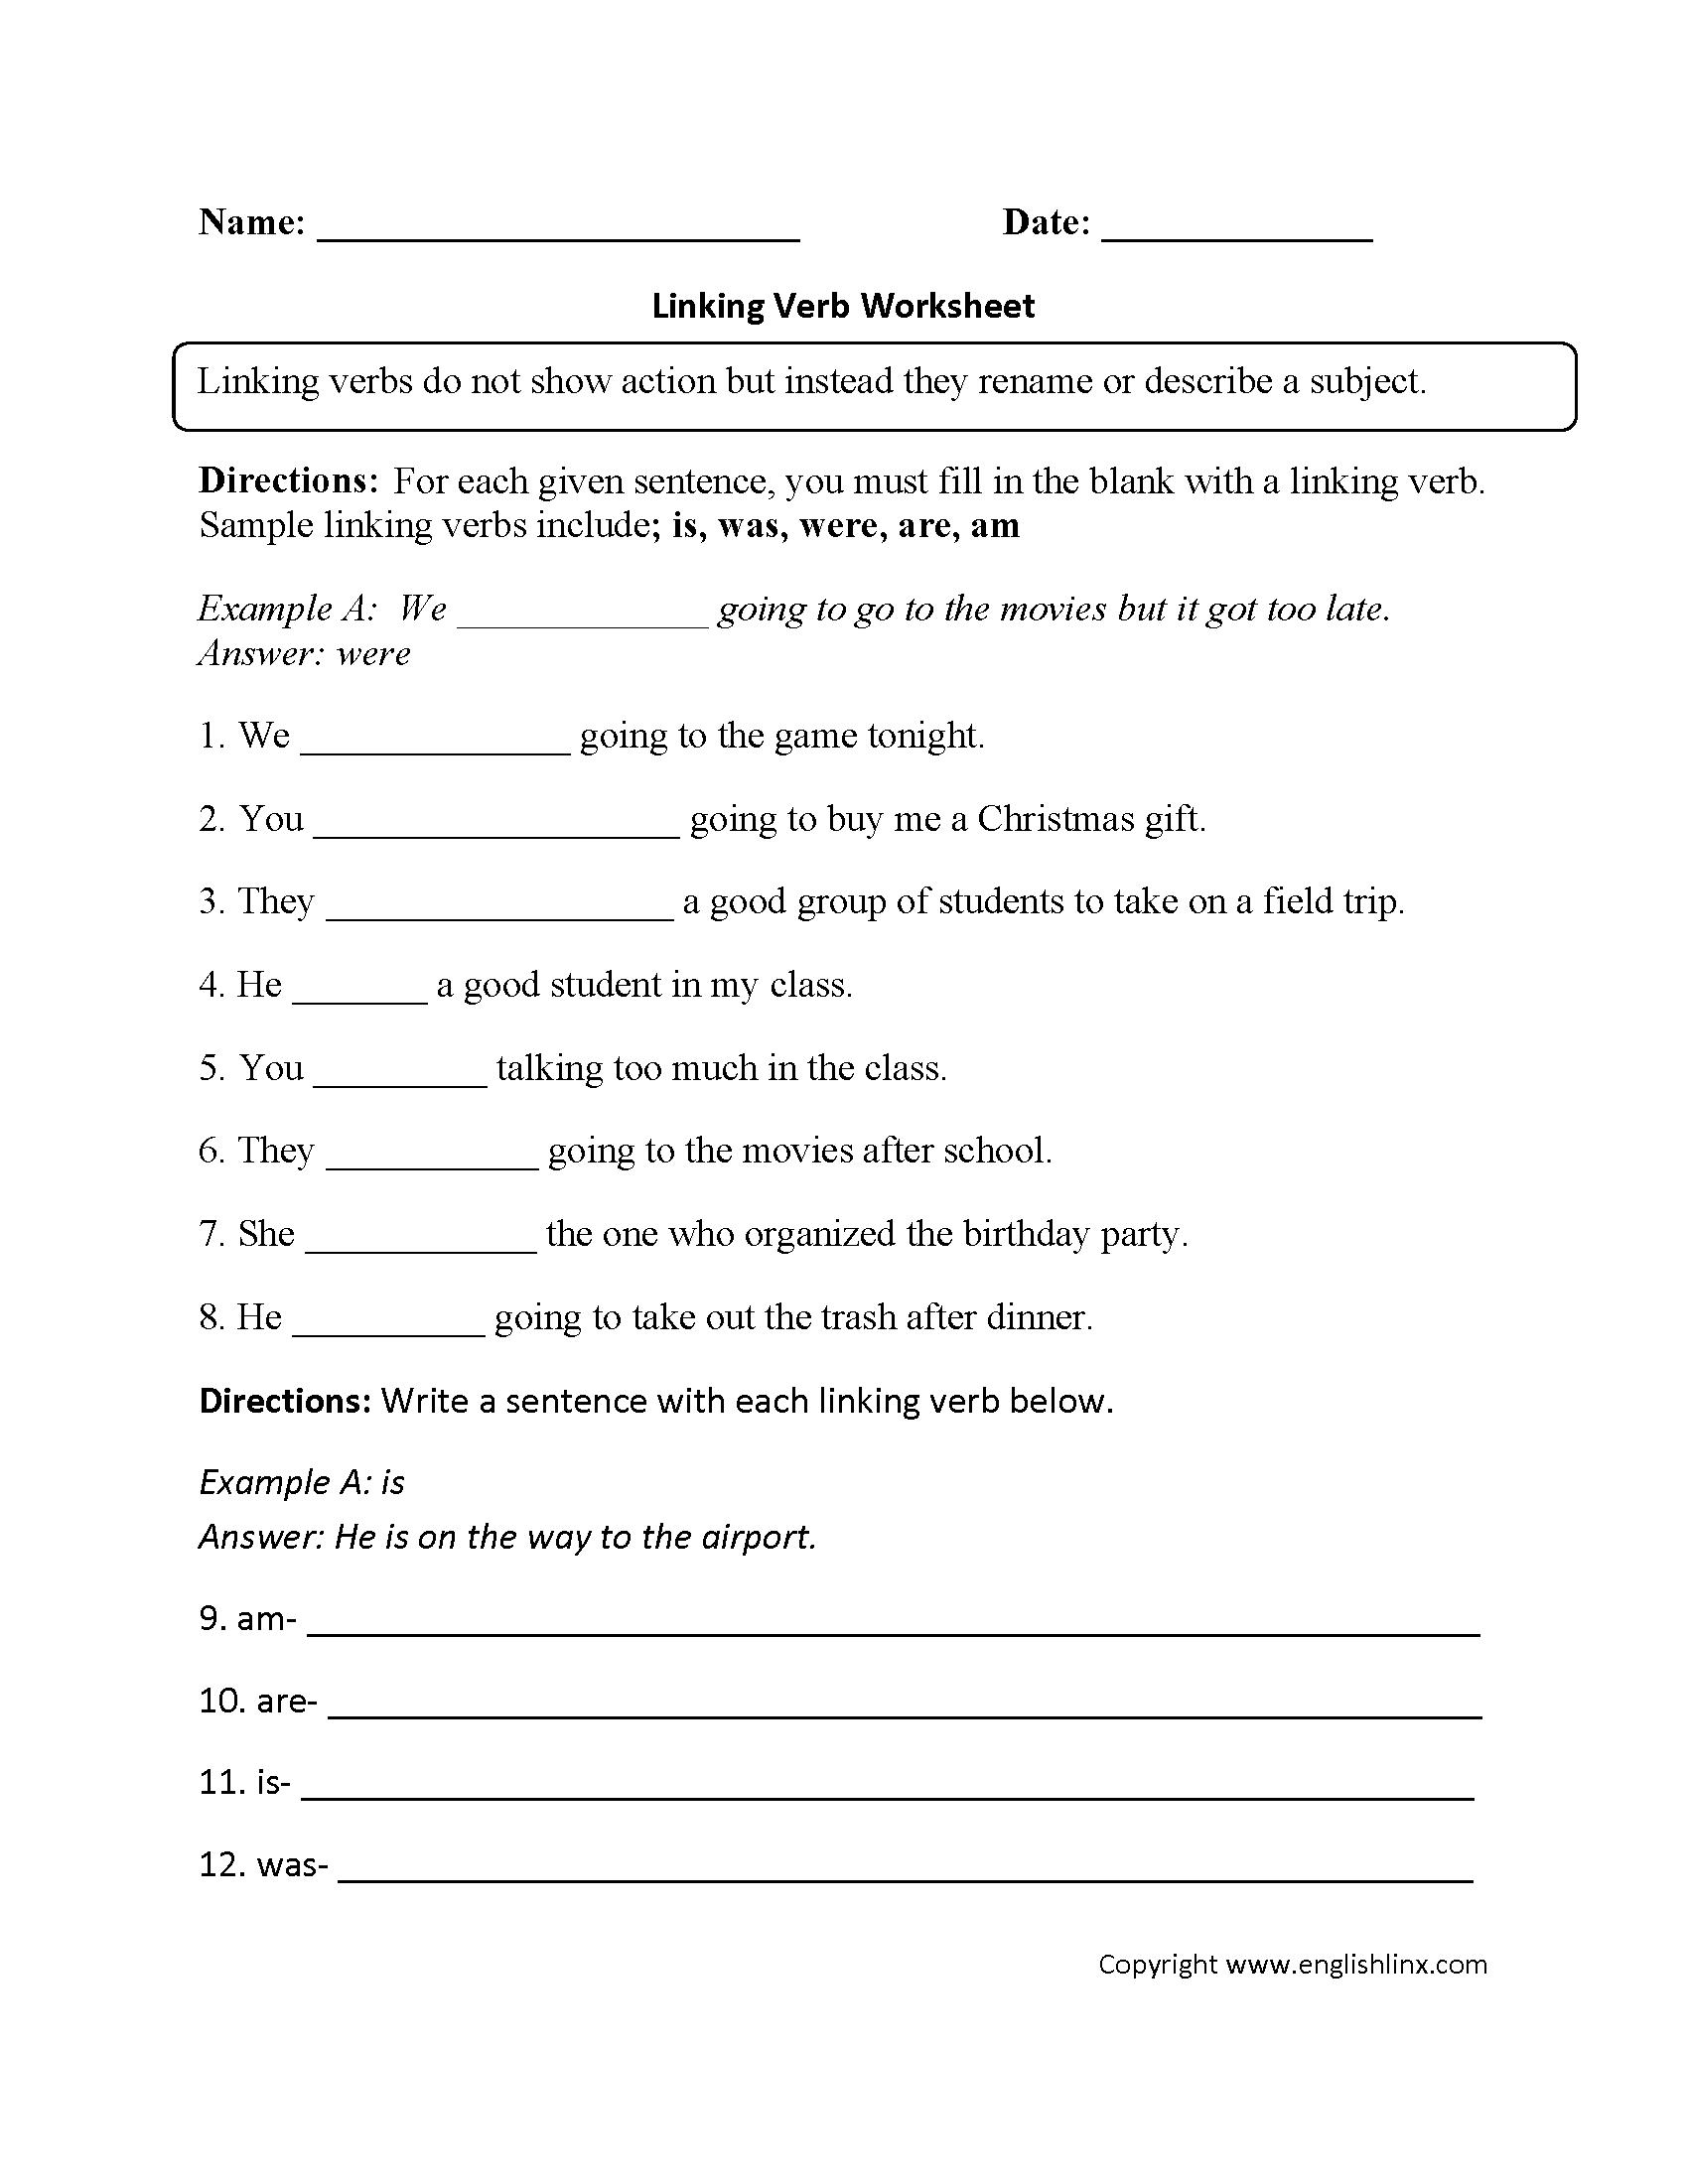 Worksheets Linking Verb Worksheets linking verb worksheets free library download and verbs worksheets